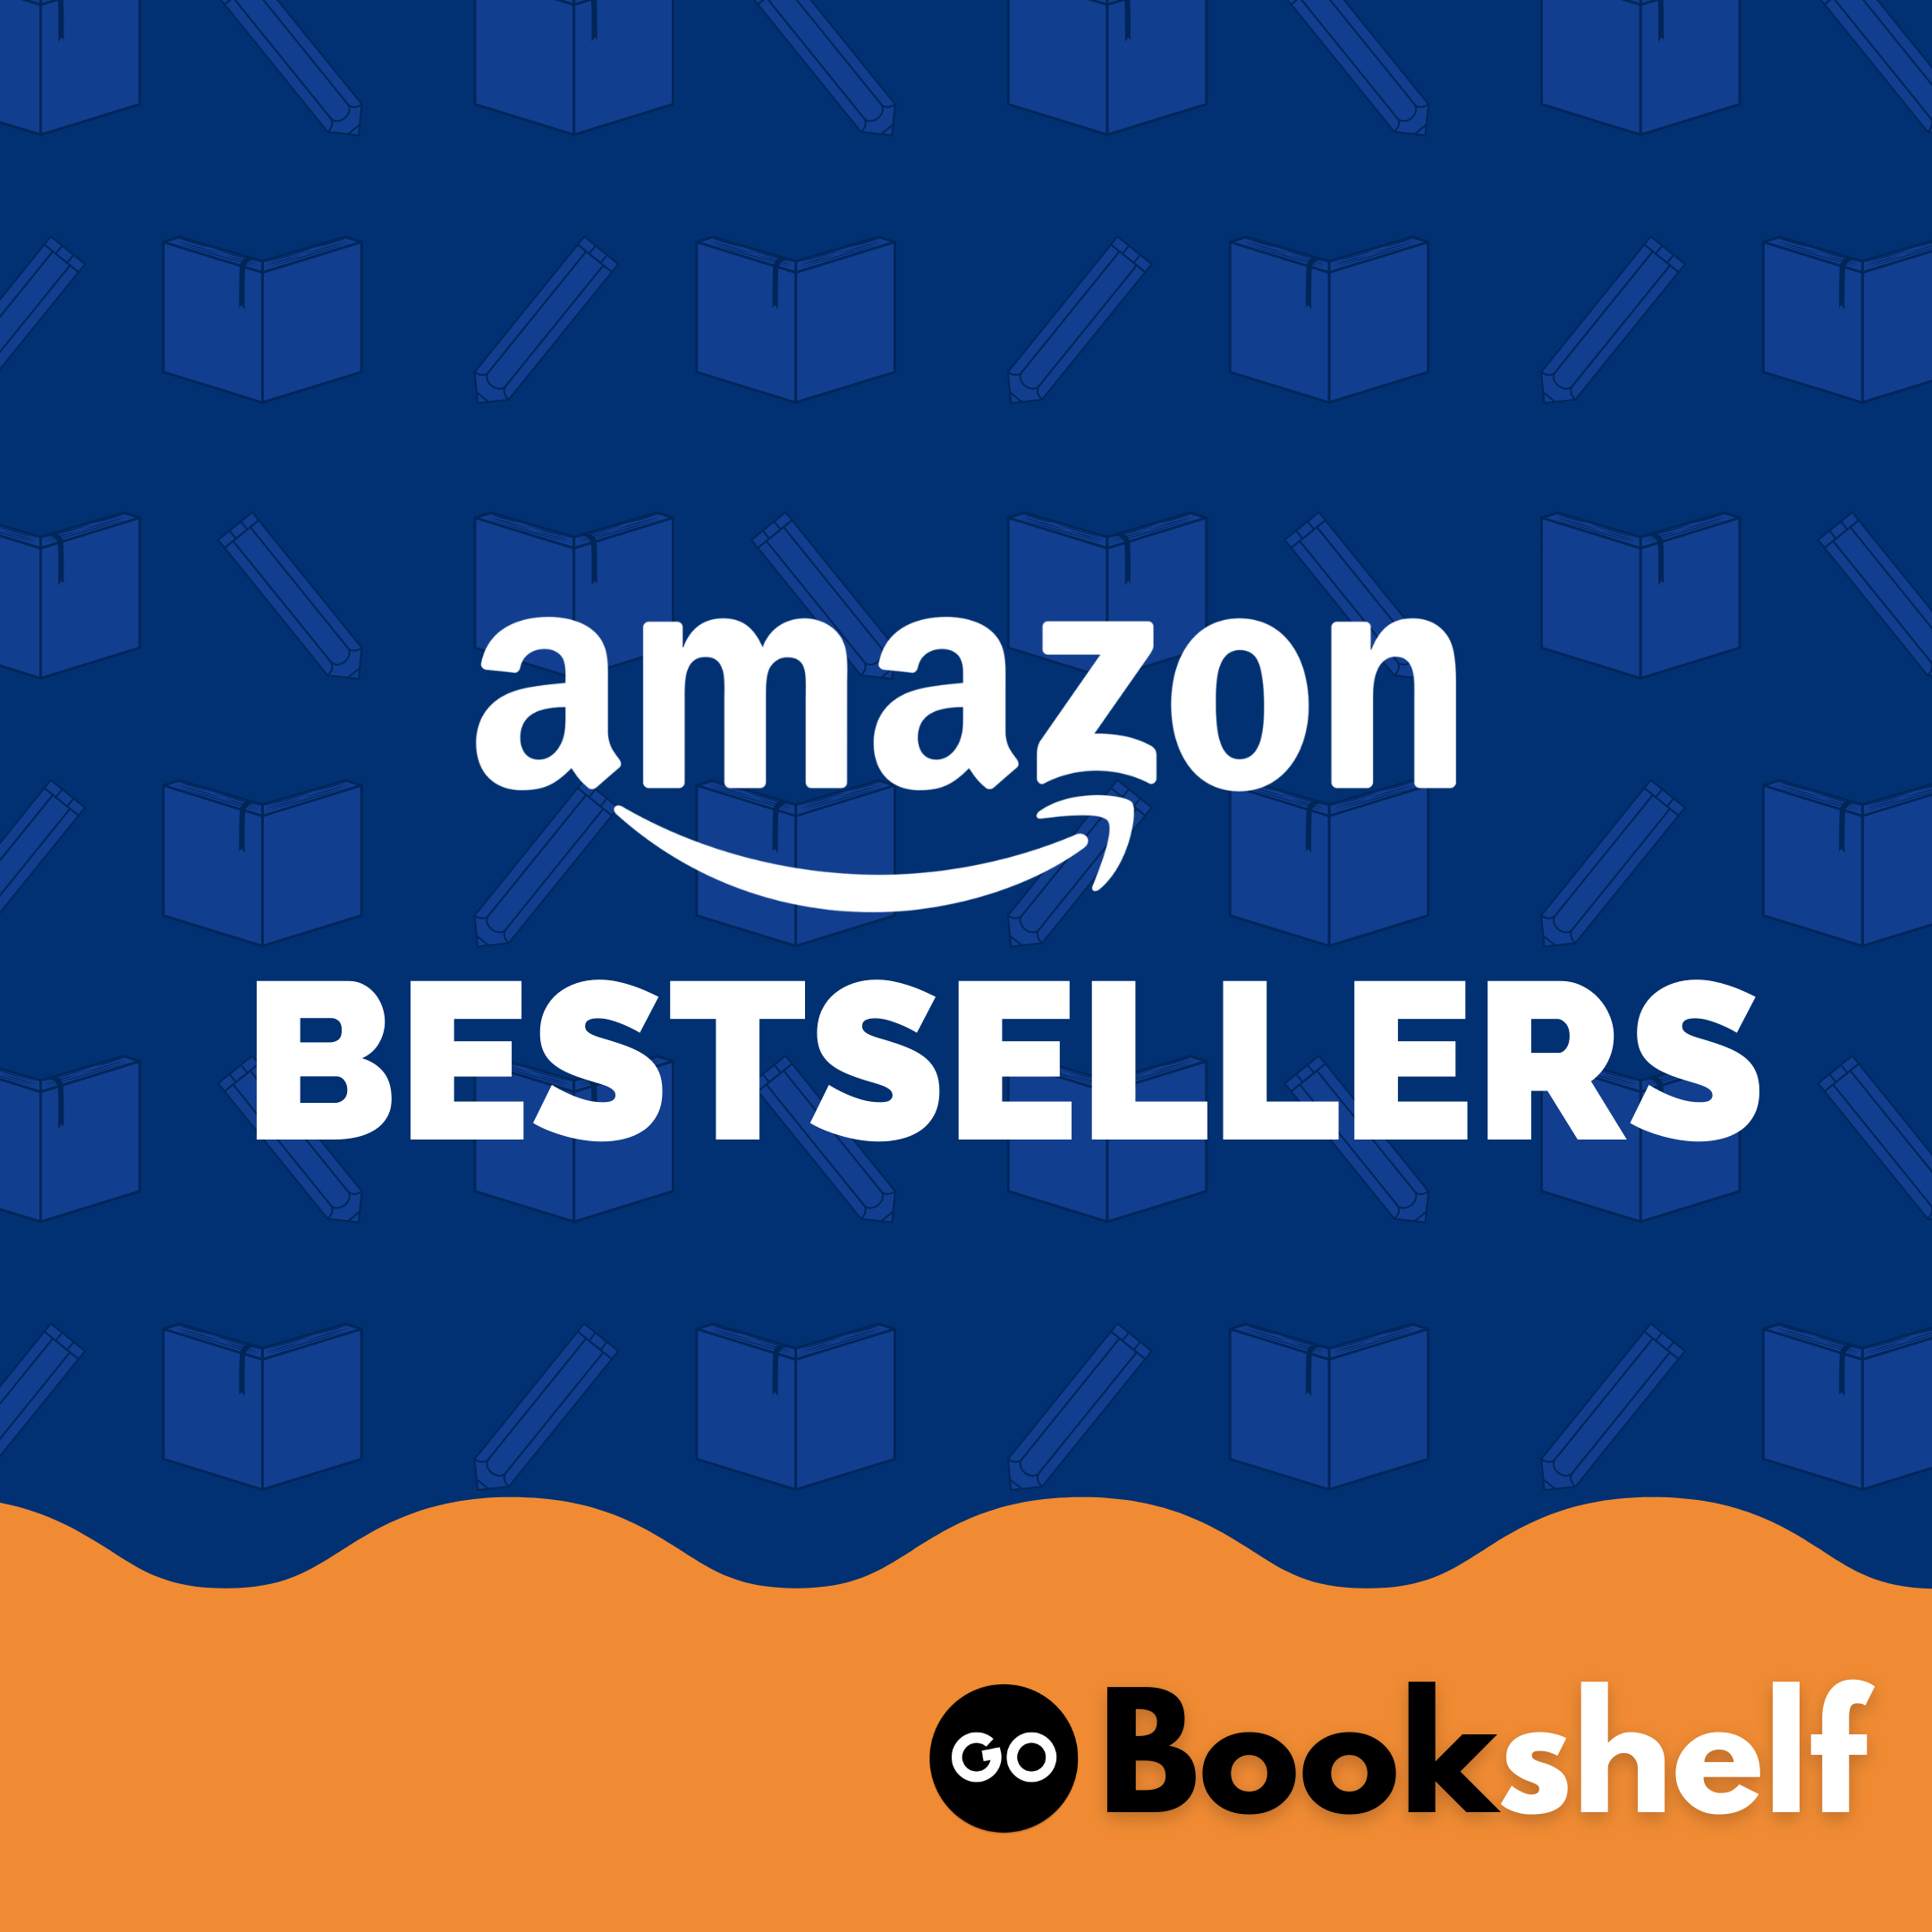 Go Bookshelf | Amazon Collection